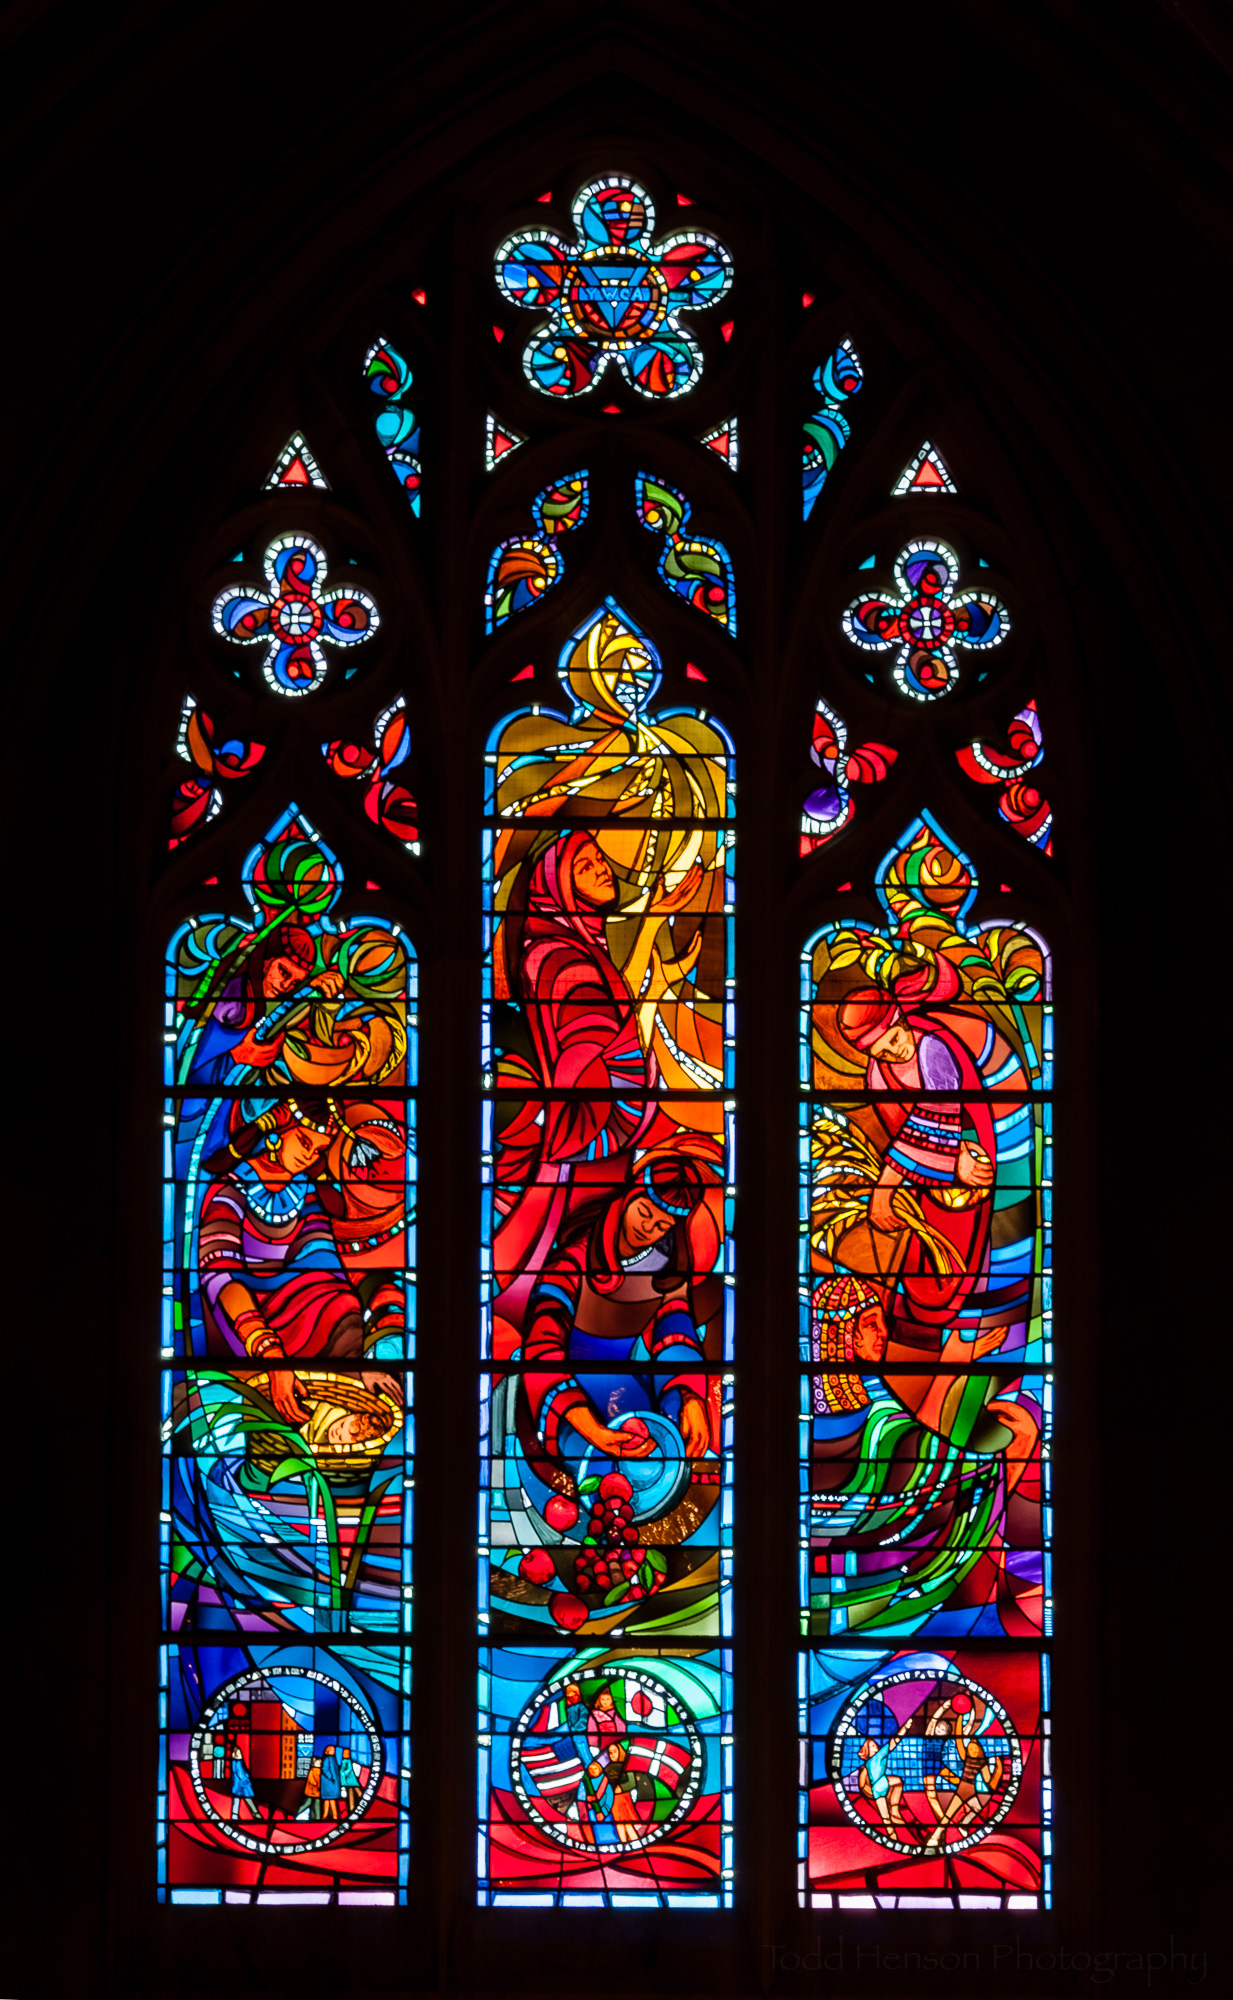 YWCA Window, a stained glass window at Washington National Cathedral